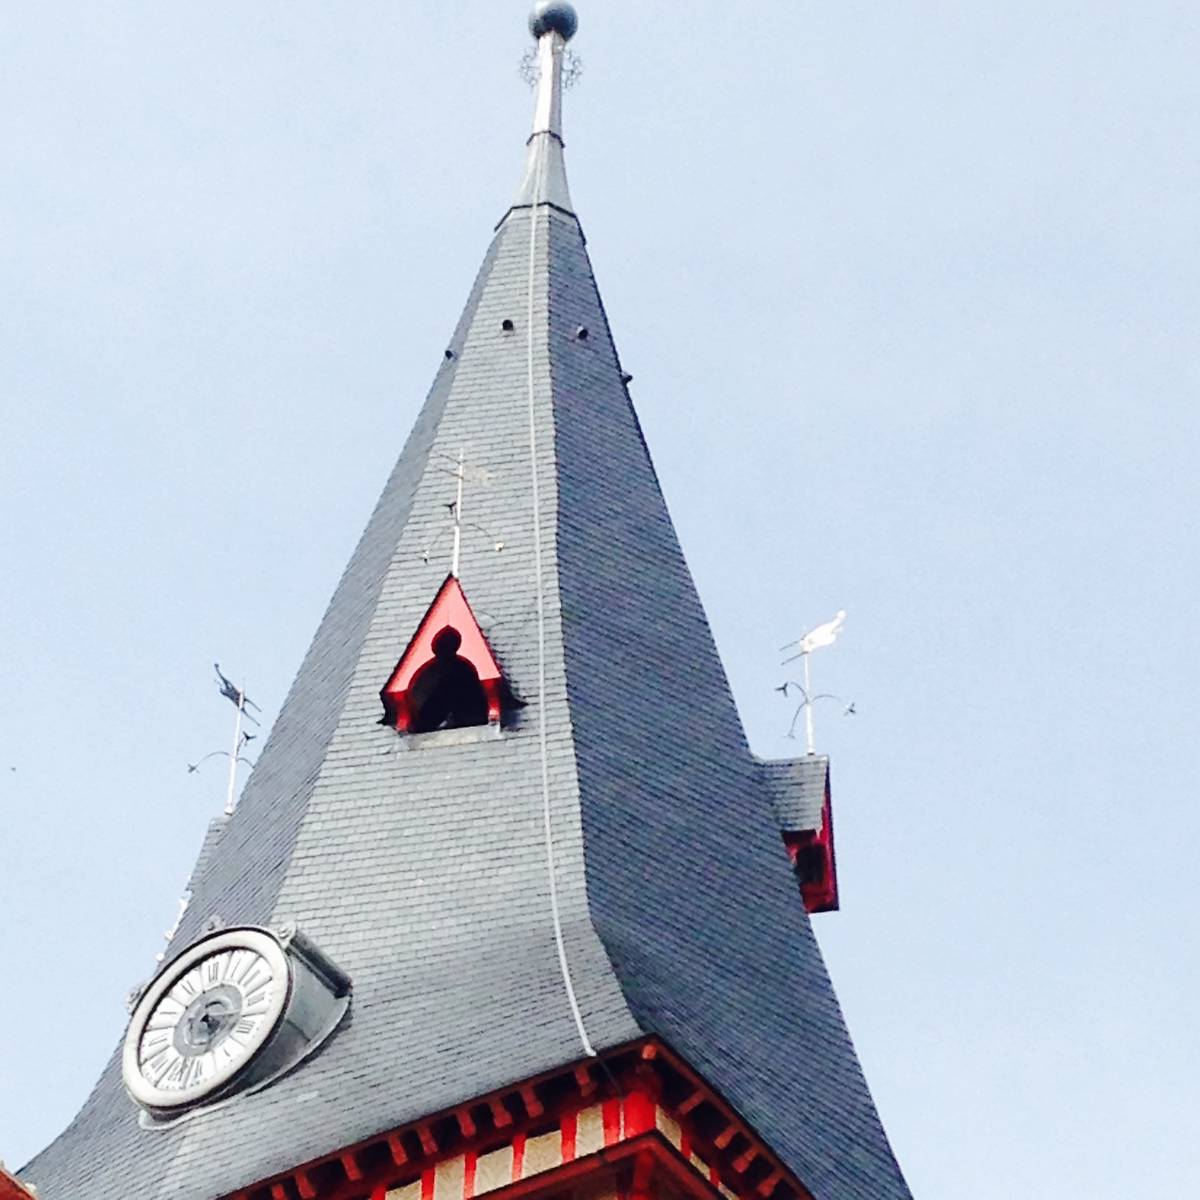 EGLISE DE BEAUMONT EN AUGE